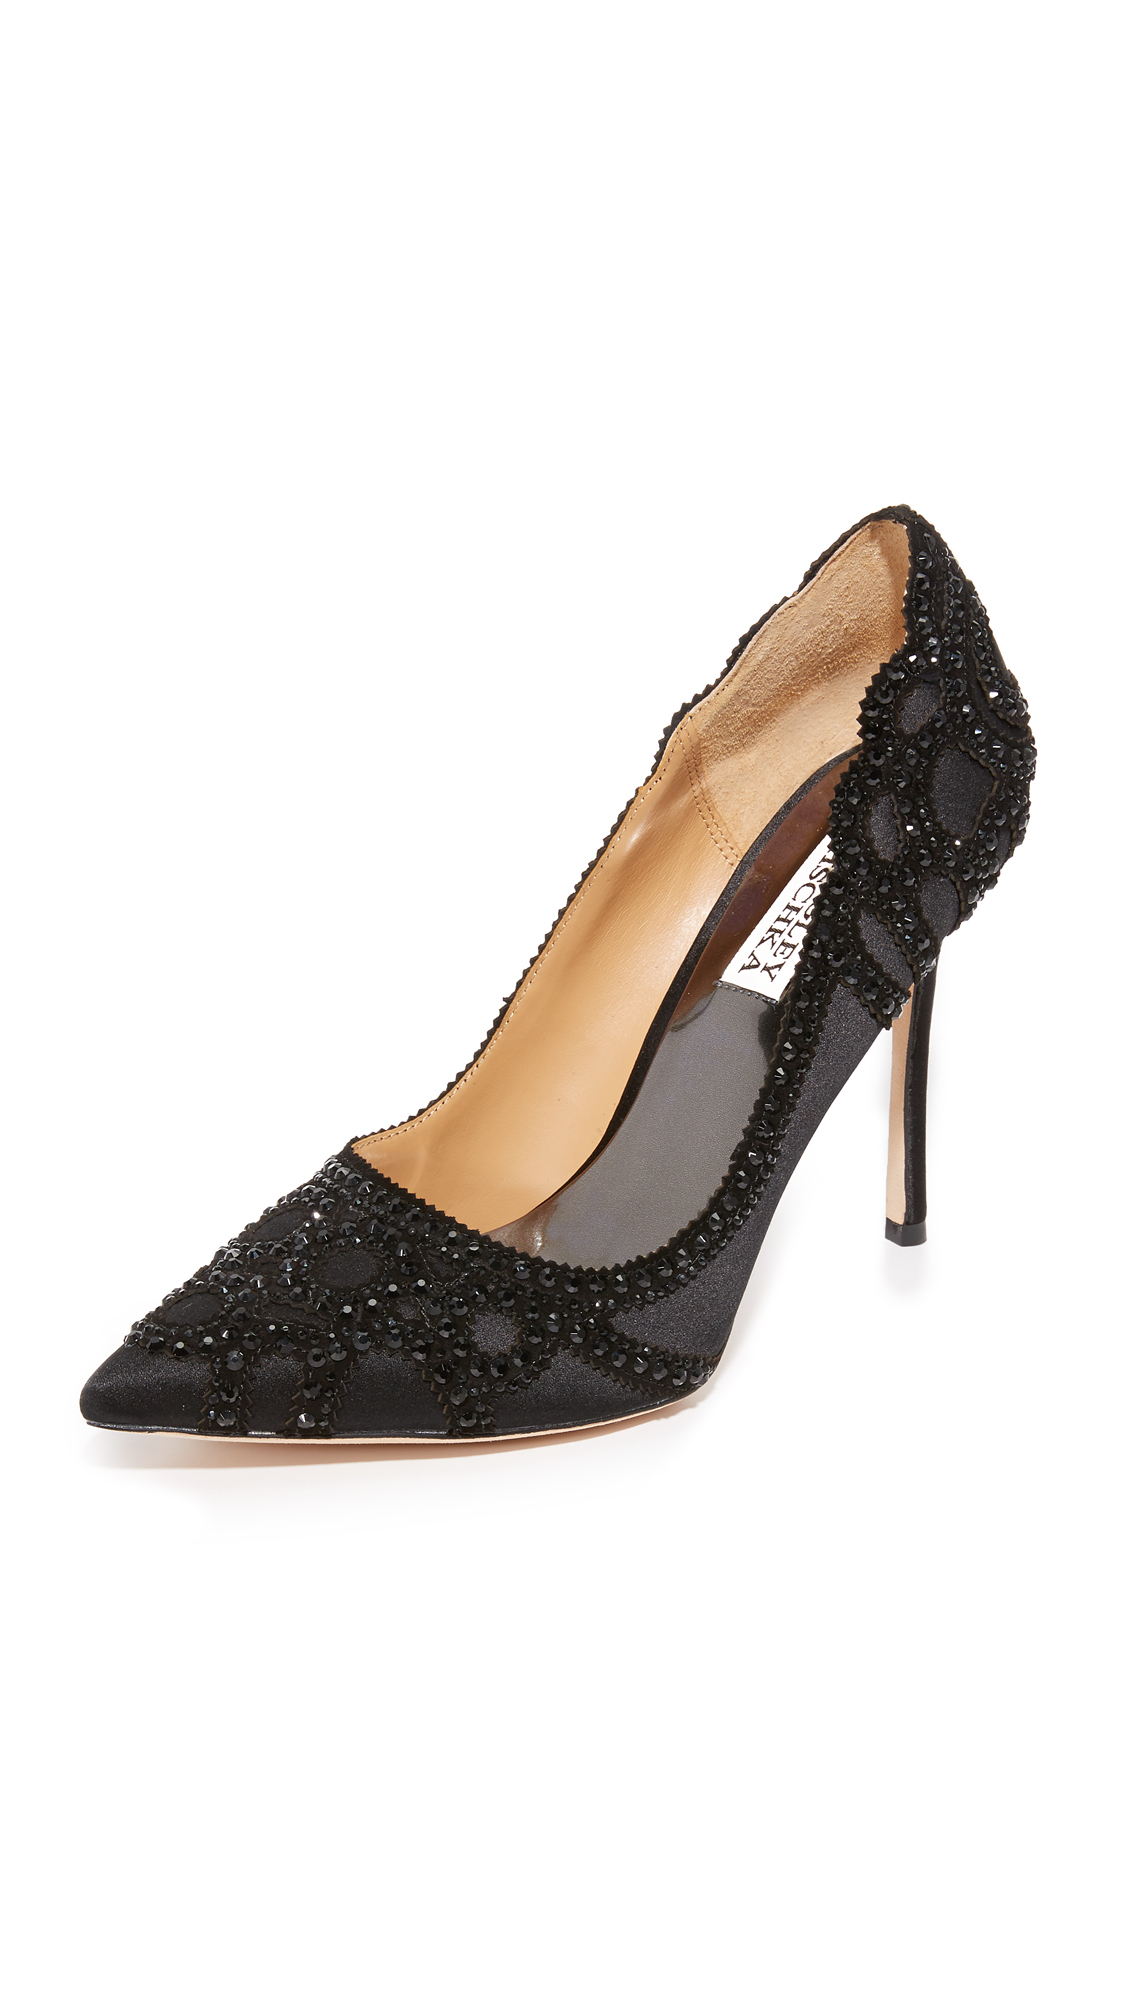 Photo of Badgley Mischka Rouge Pumps Black - Badgley Mischka online